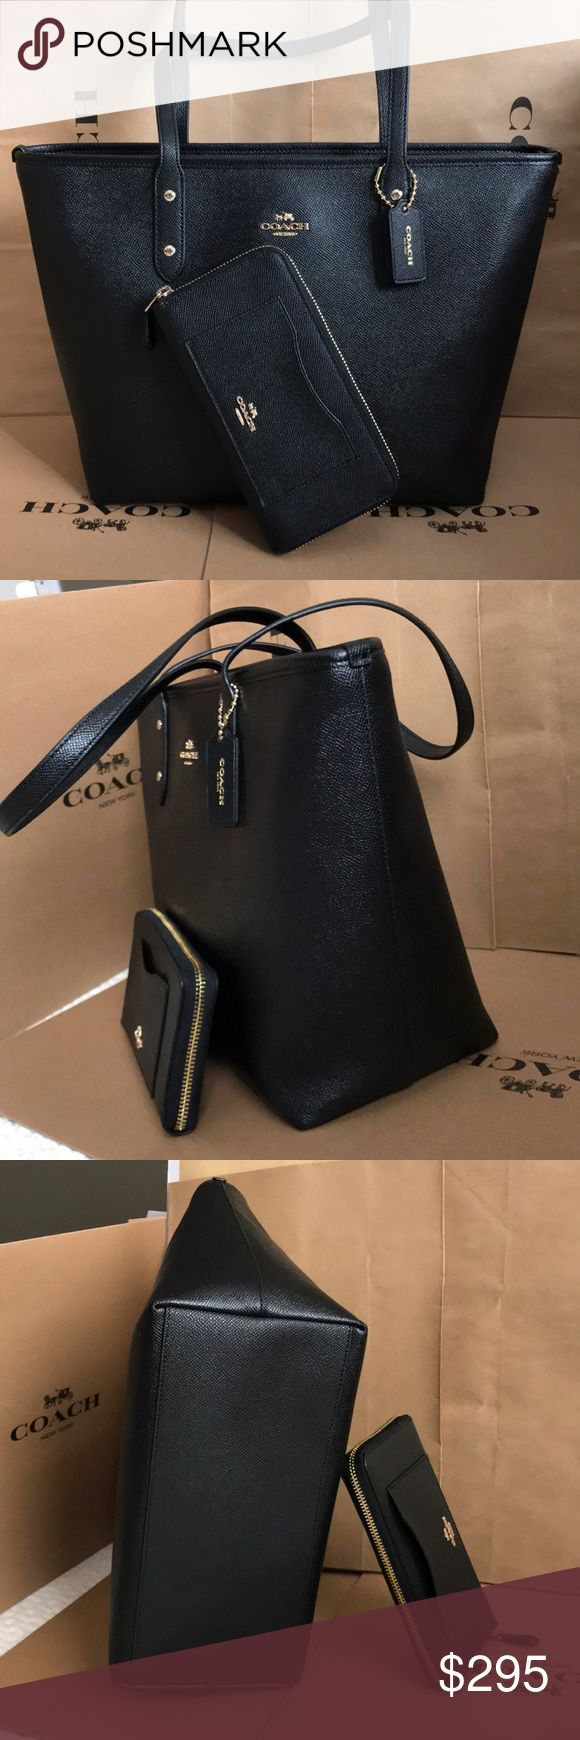 🍀Coach Set🍀 100% Authentic Coach Tote Bag and Wallet, brand new with tag!😍😍😍color Black Coach Bags Totes